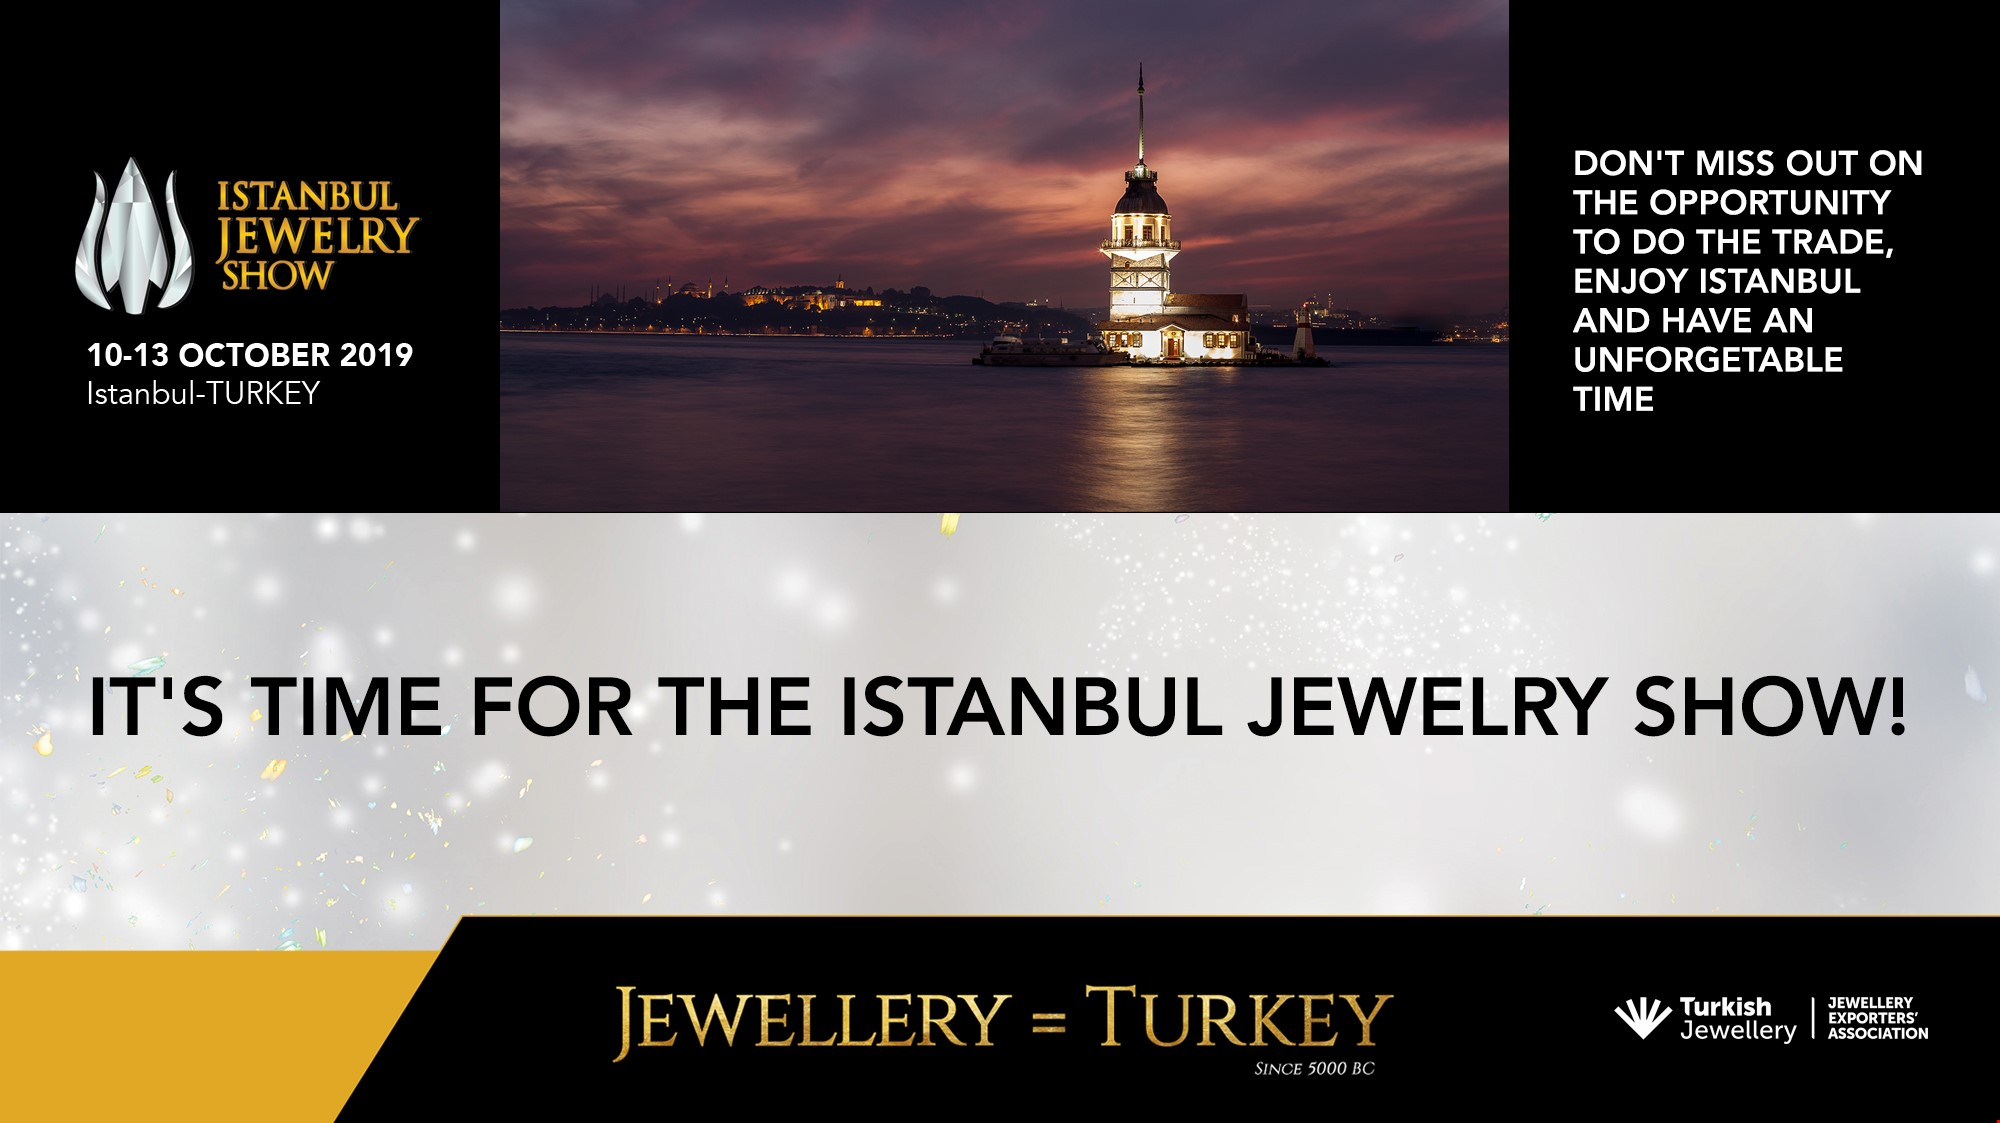 ITS TIME FOR THE ISTANBUL JEWELRY SHOW